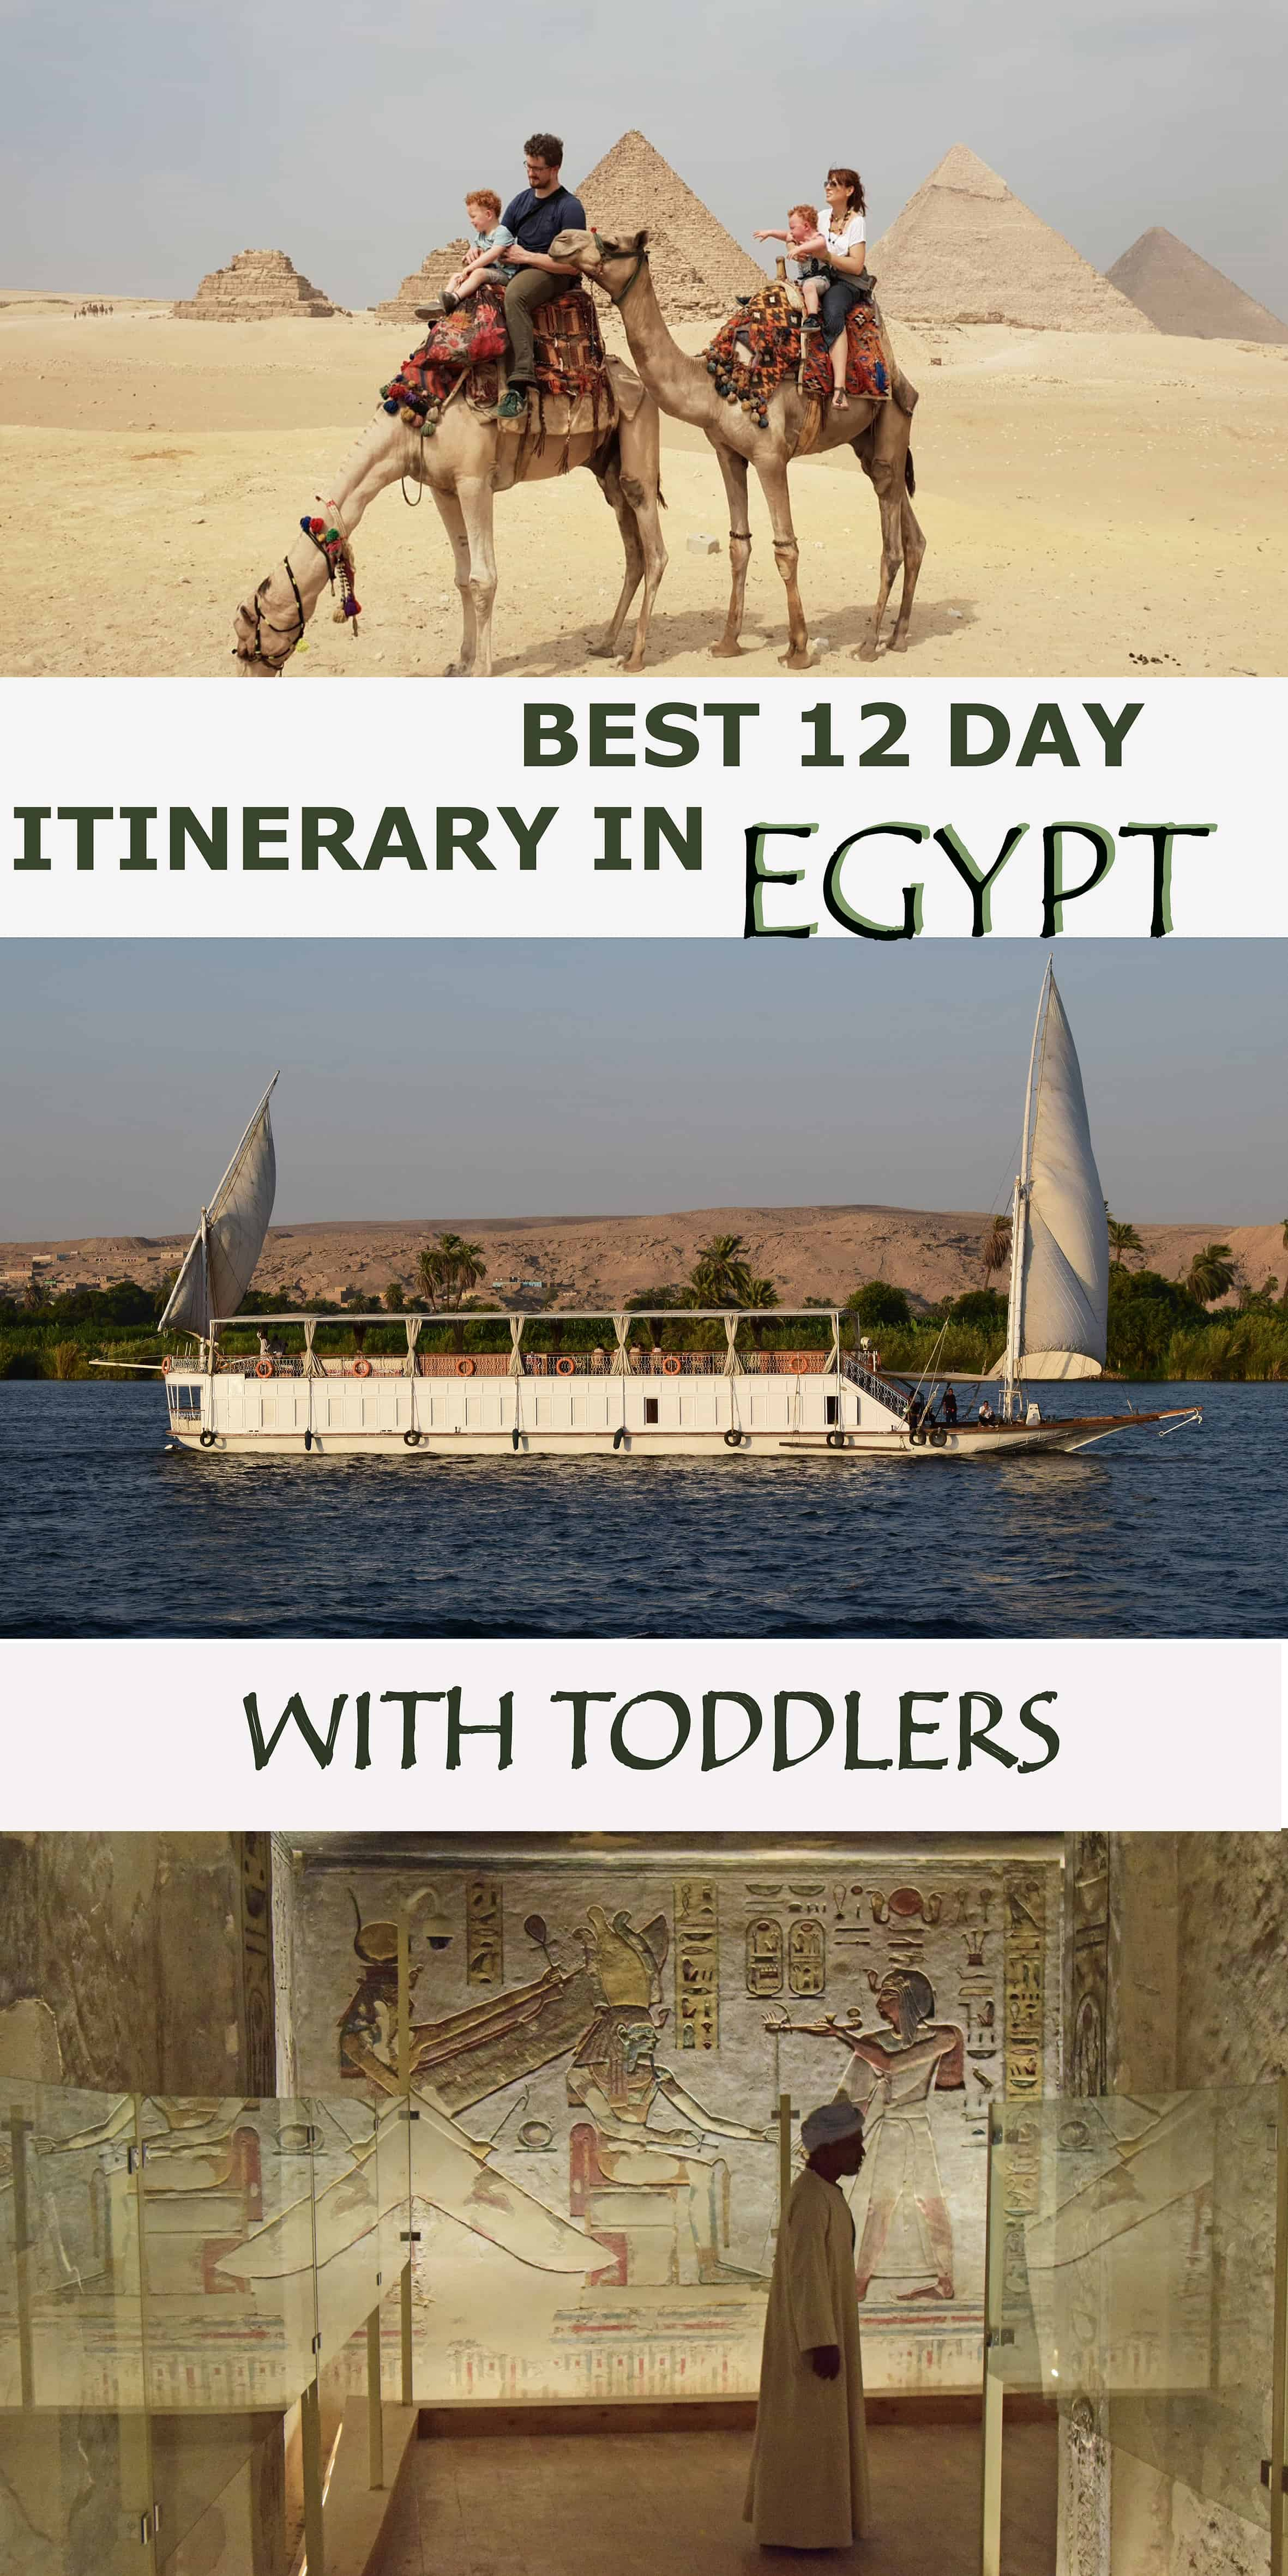 Best way to organize 12 days in Egypt visiting Cairo, Aswan, cruising the Nile, Luxor and the Red Sea...while travelling with toddlers